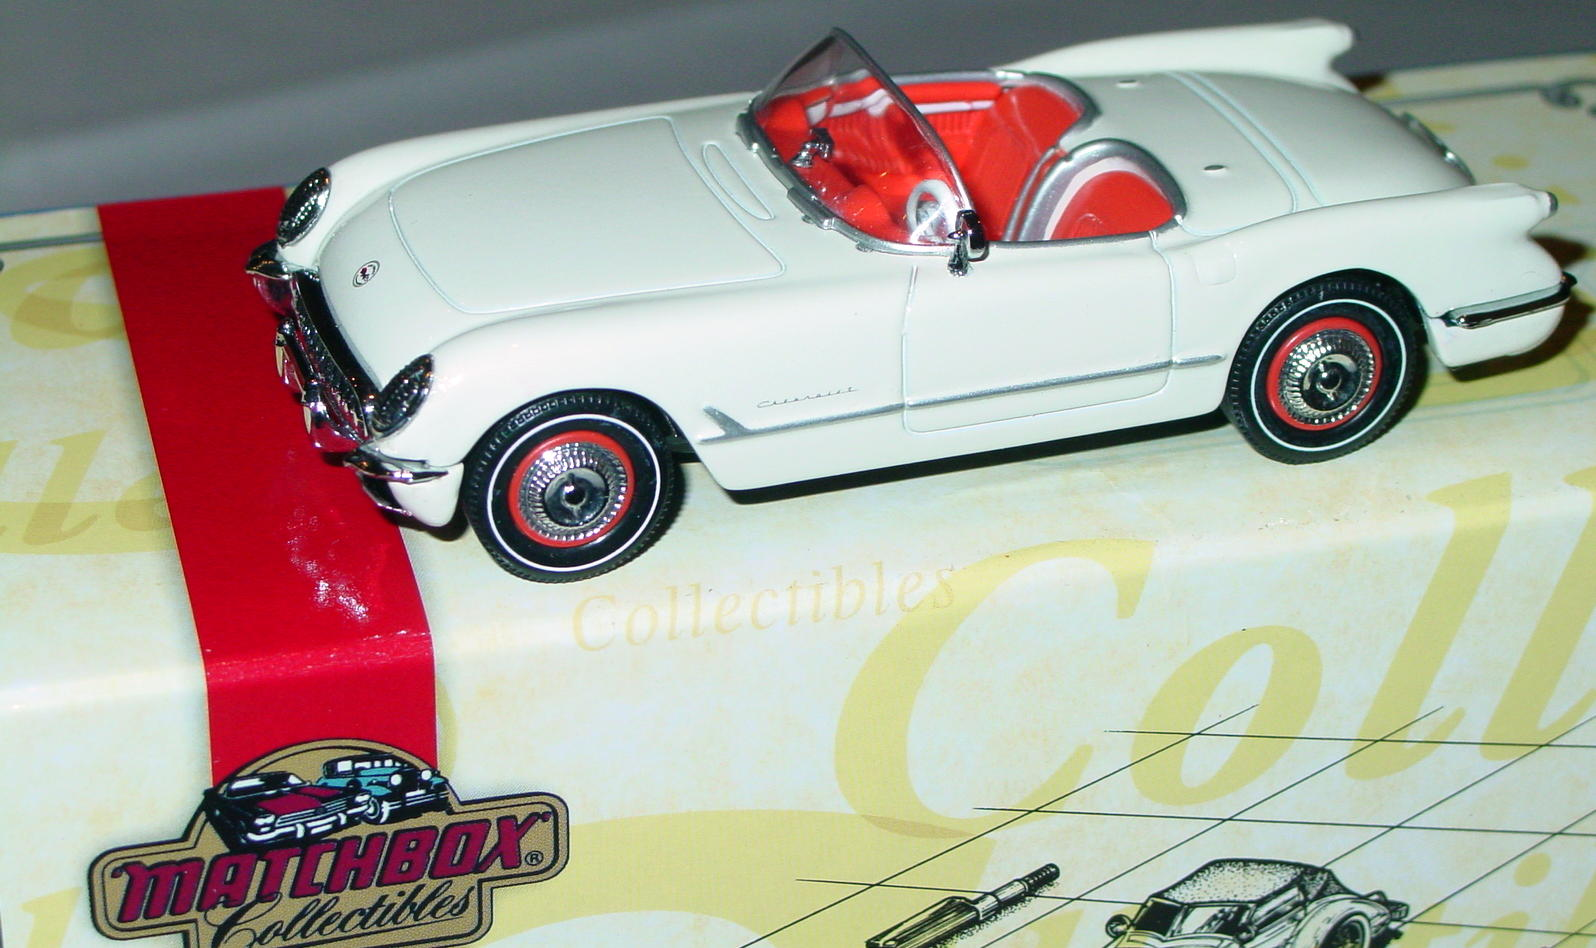 Collectibles - CCV06M MATCHBOX ULTRA 53 Corvette Cream